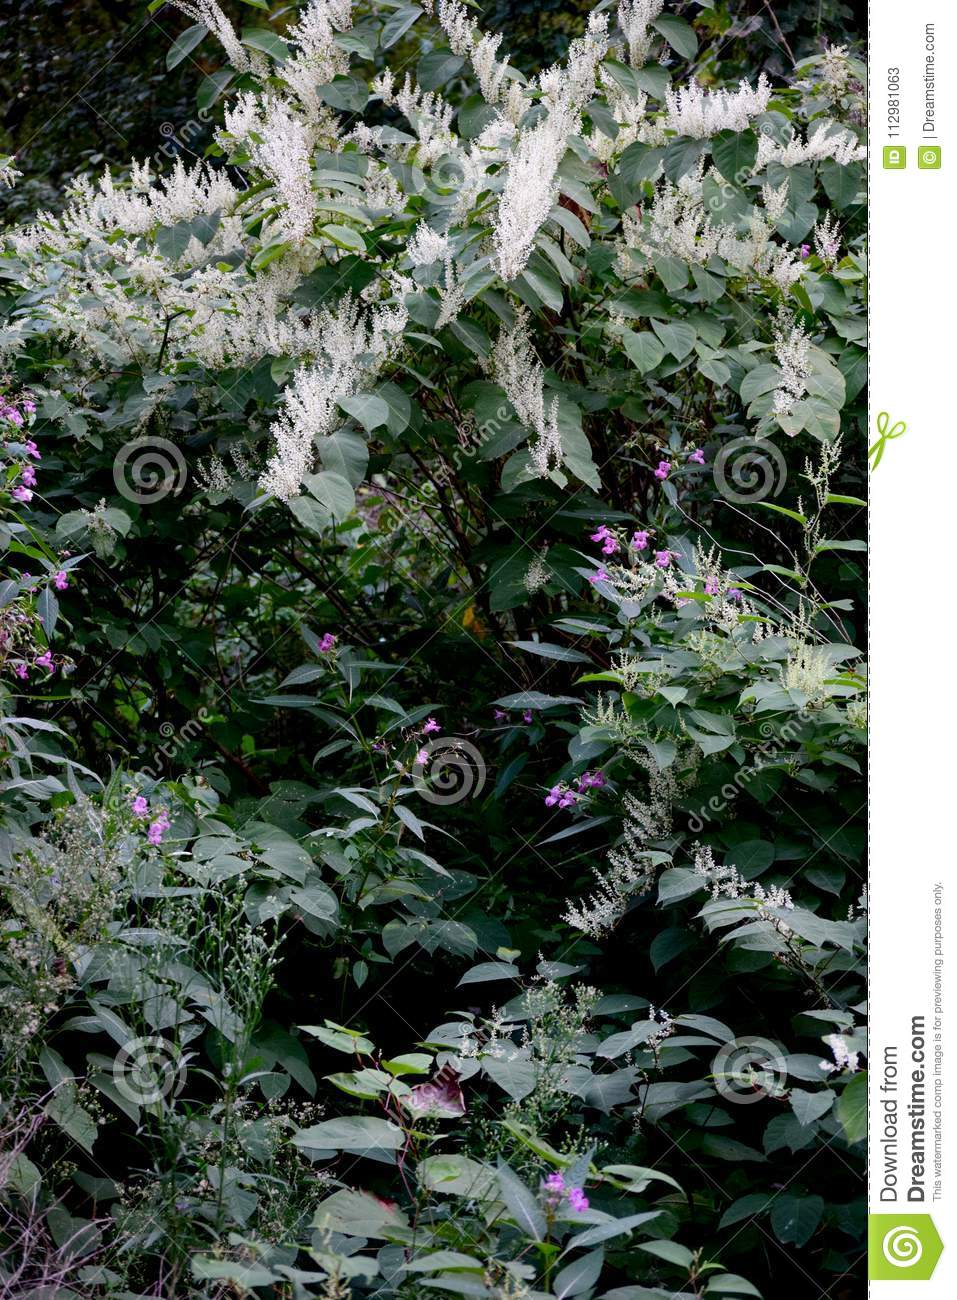 Wild vegetation with white and pink flowers